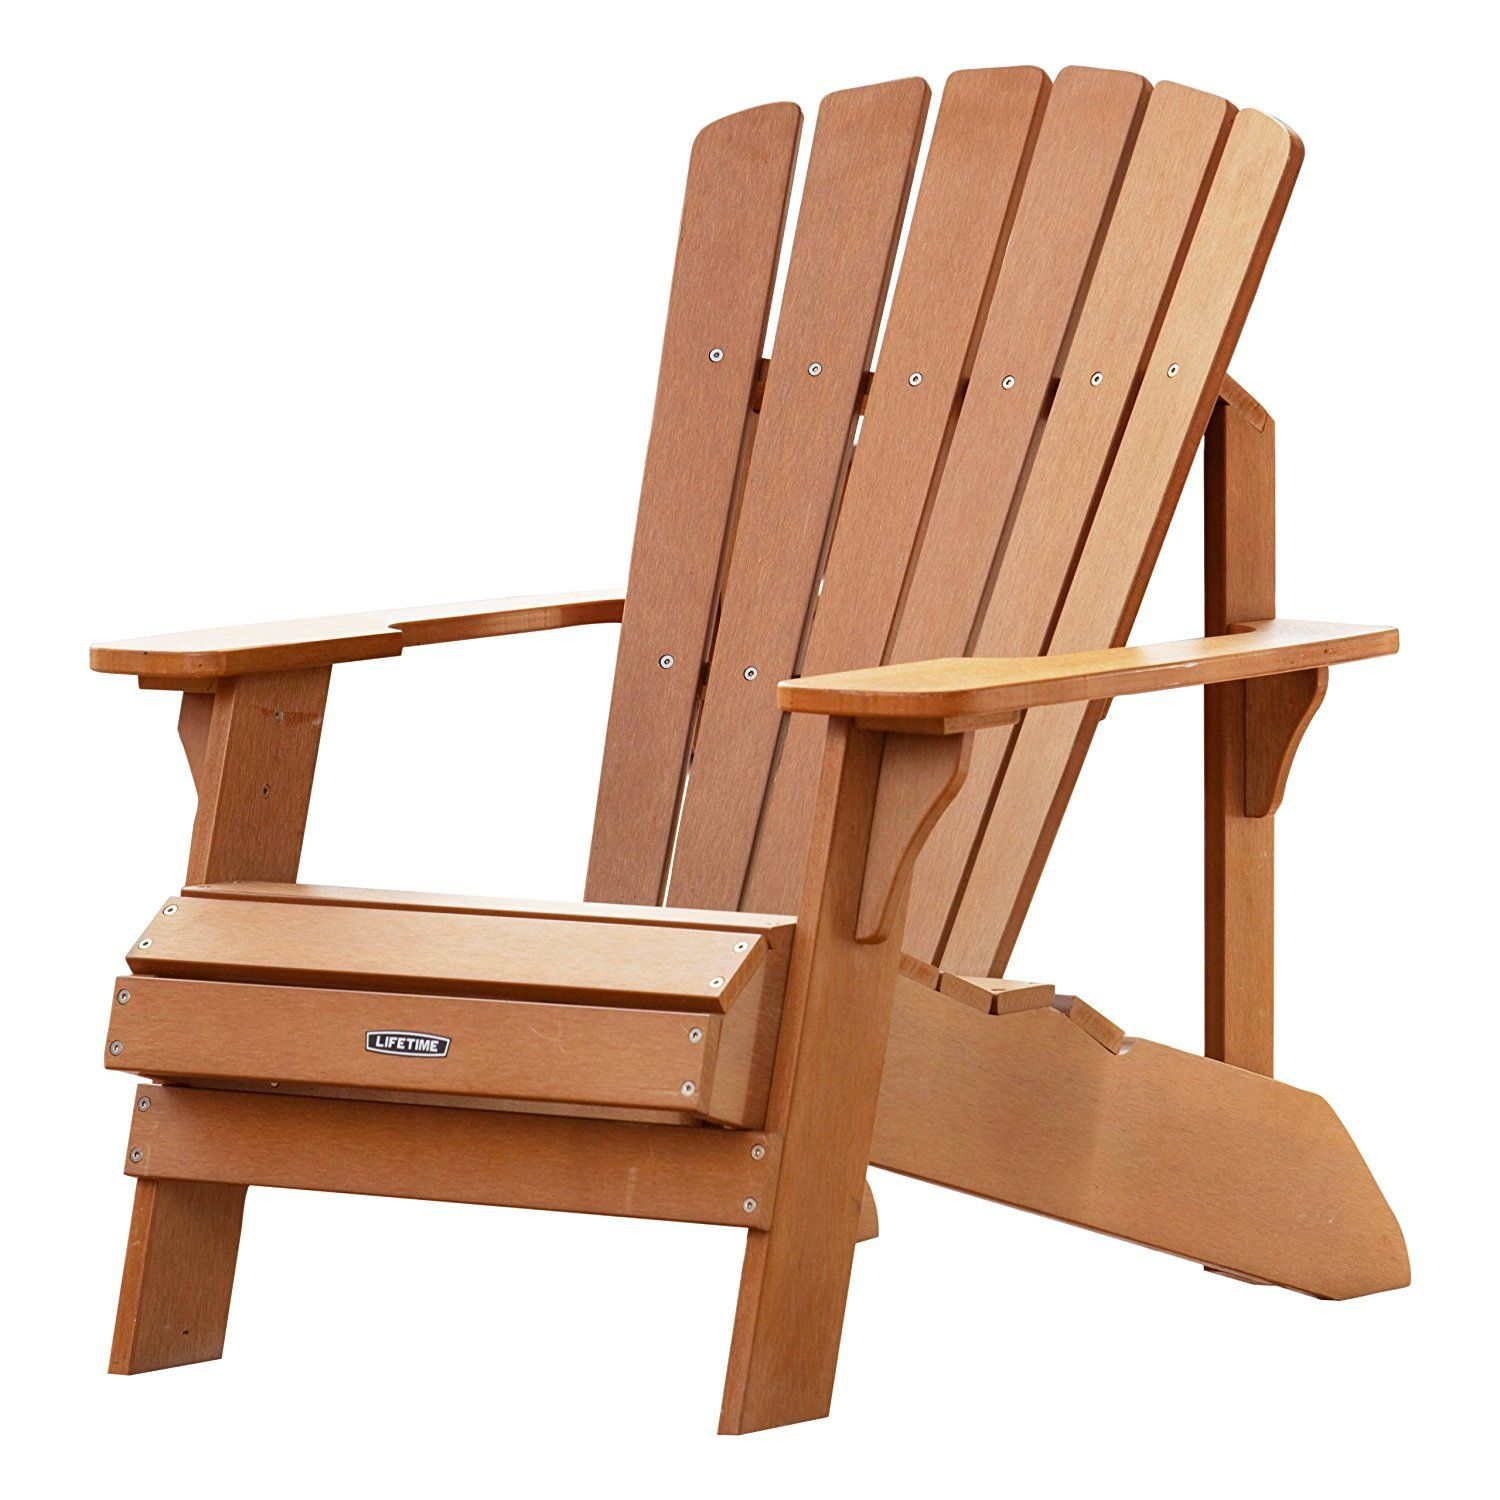 Heavy Duty Adirondack Chairs For Large